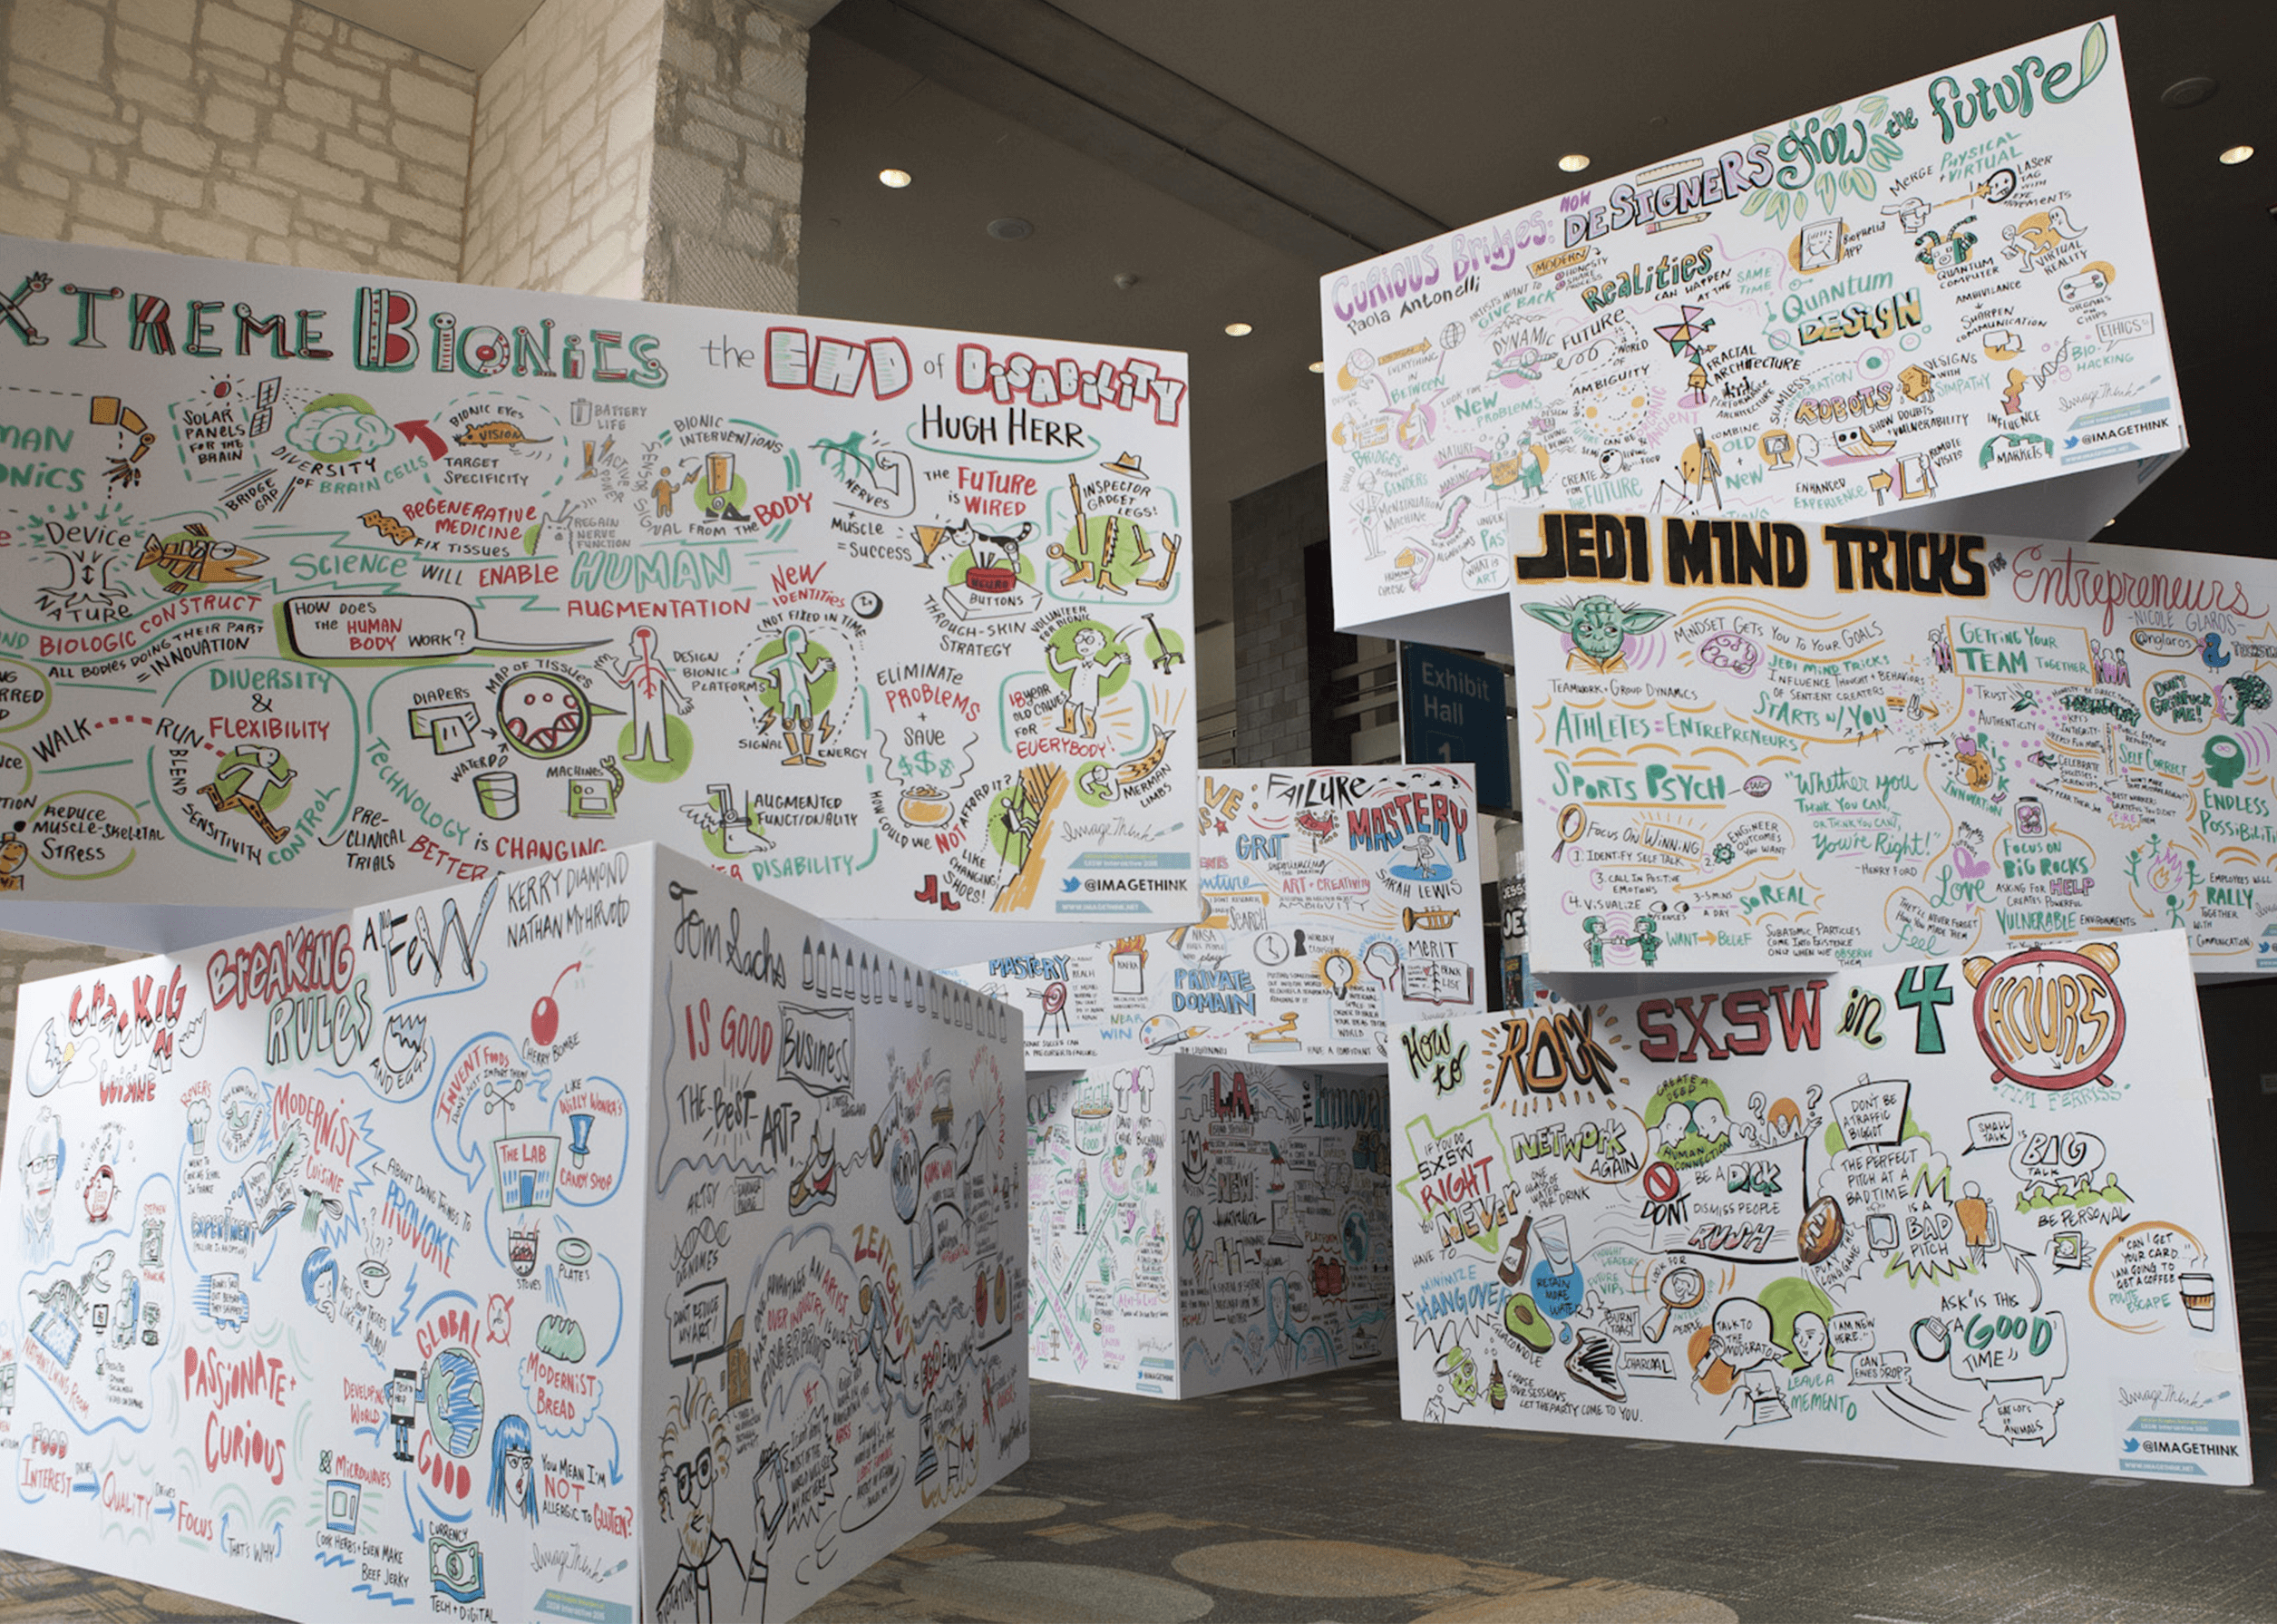 Graphic recording at SXSW conference